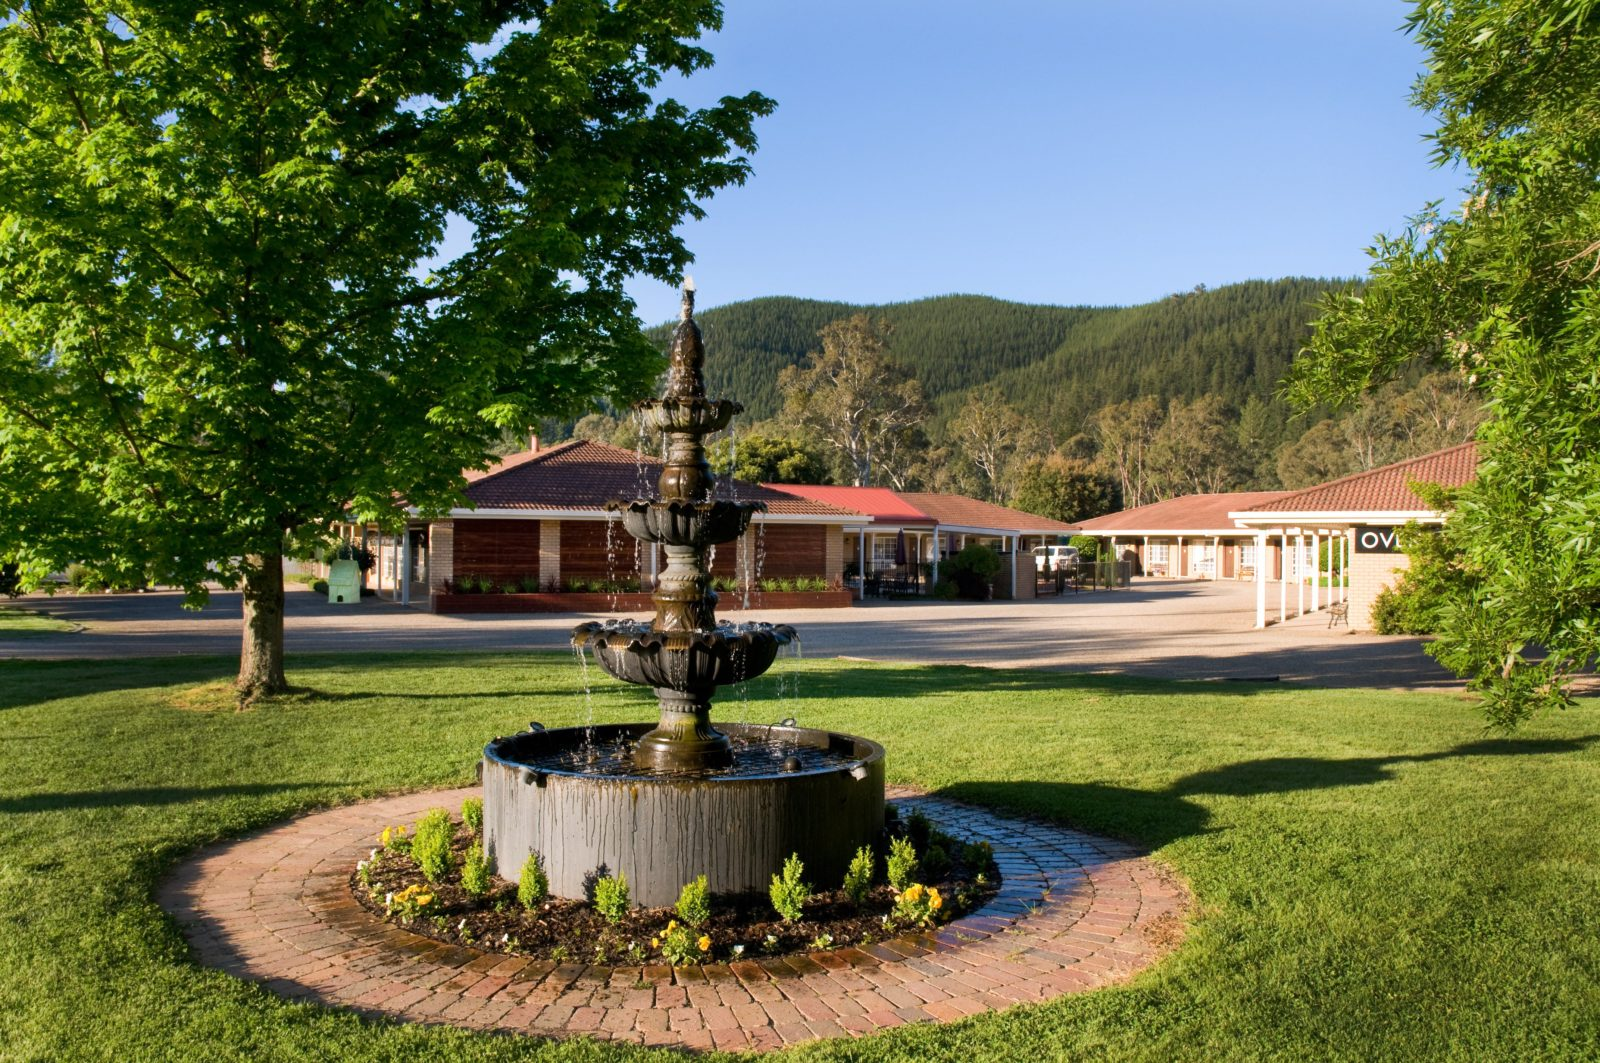 Ovens Valley Motor Inn